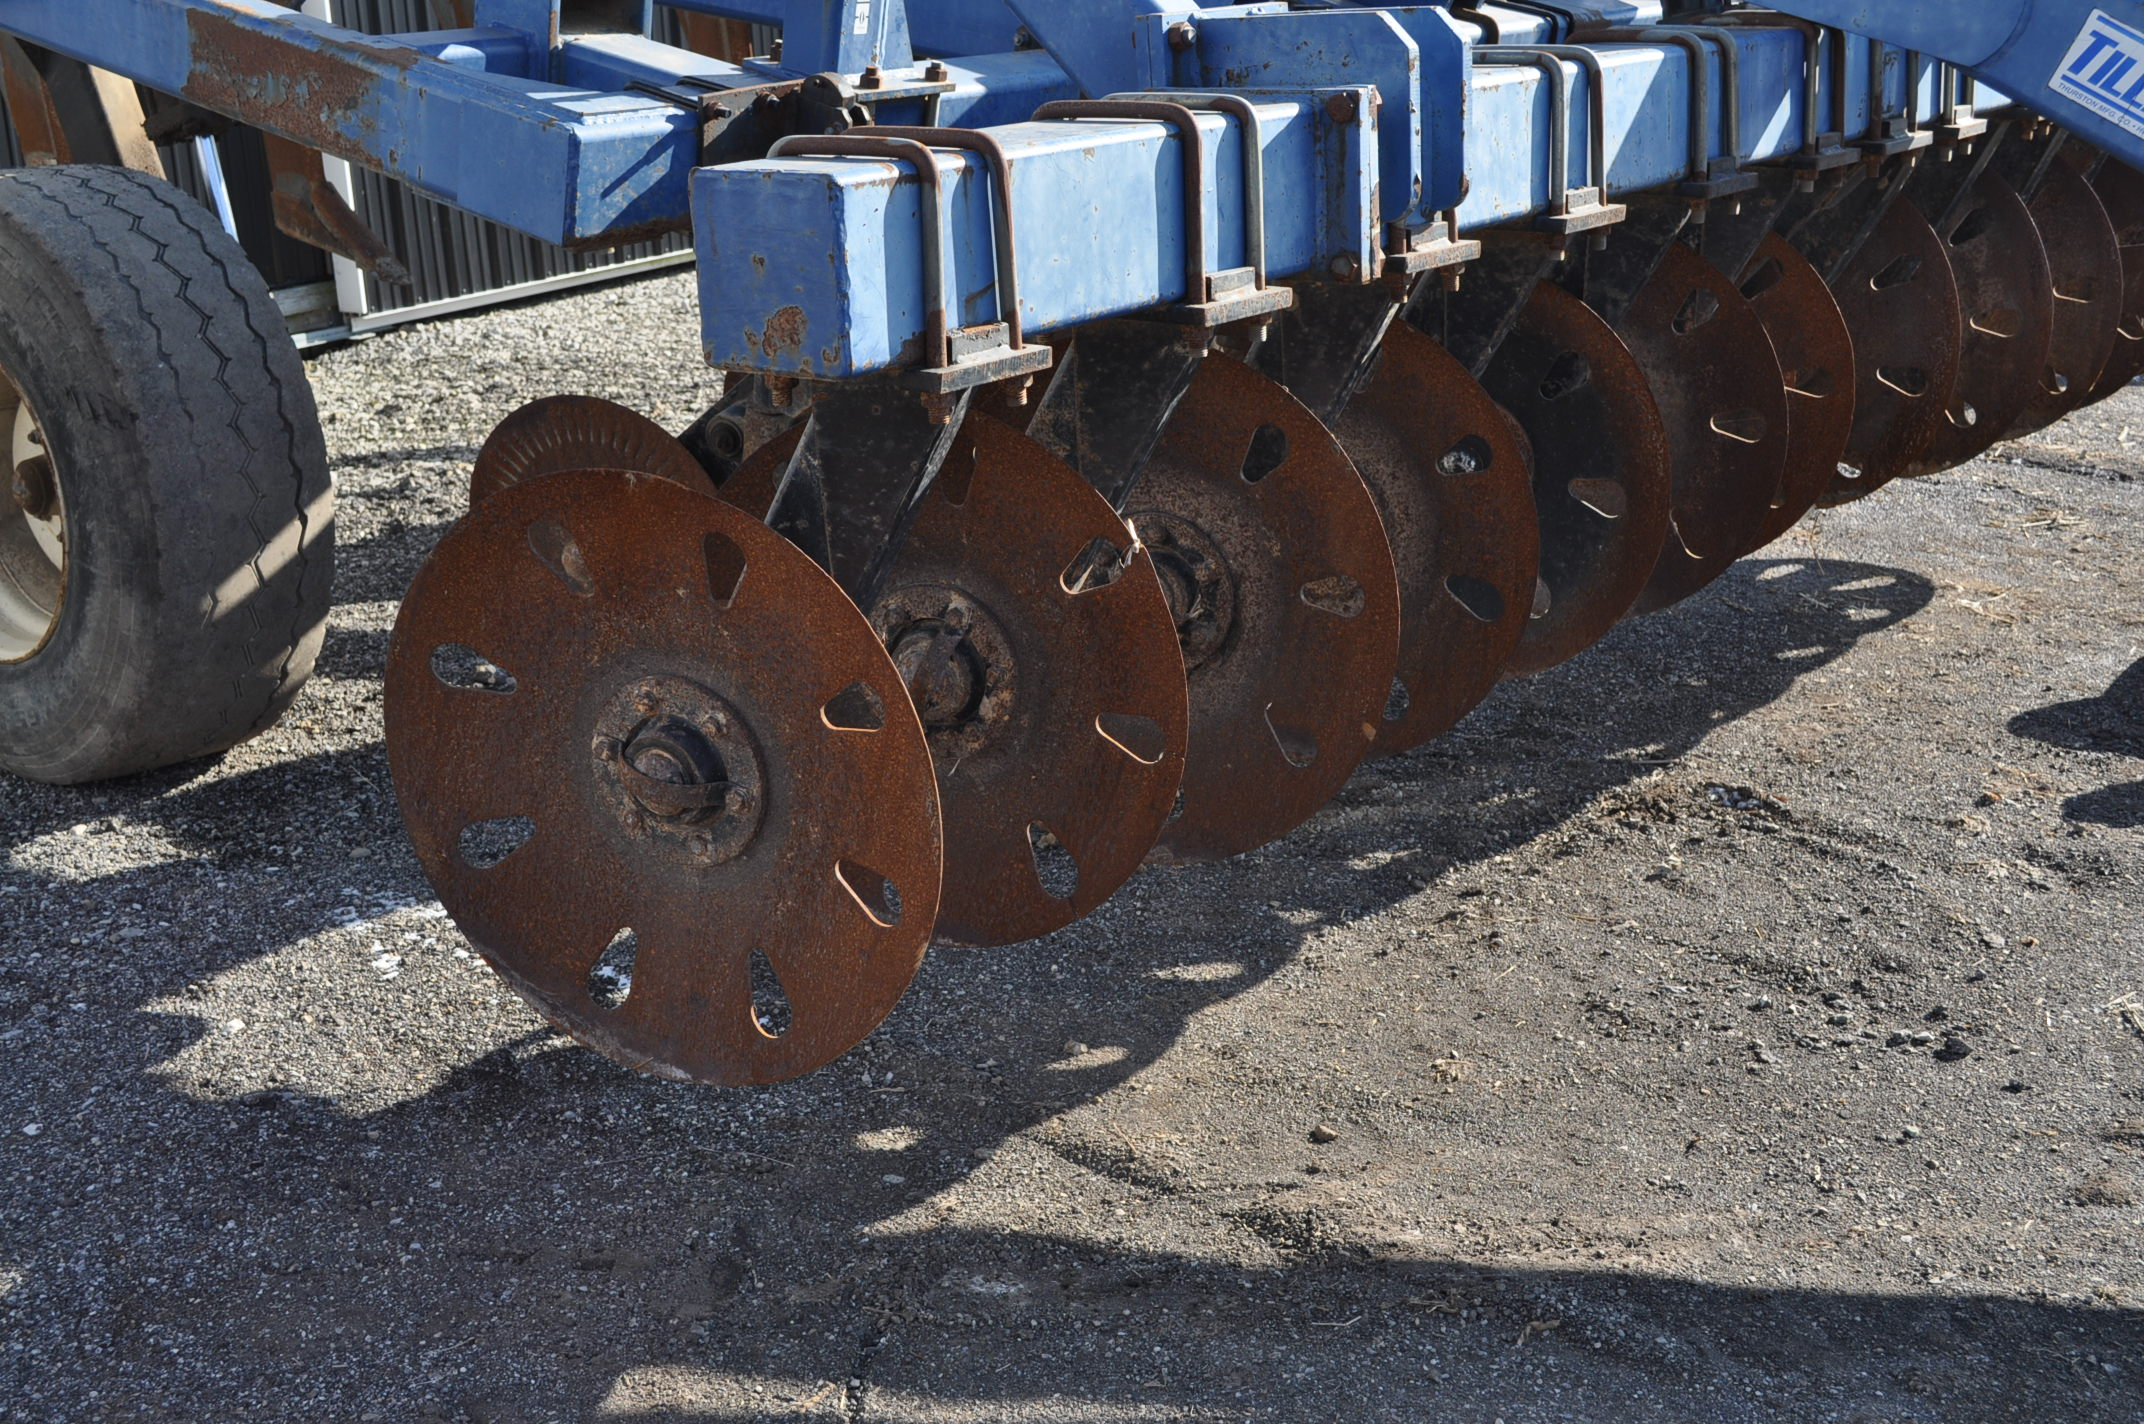 Blu-Jet Tillage Pro 7 shank inline ripper, front and rear hyd adjustable discs, sells with extra - Image 13 of 18